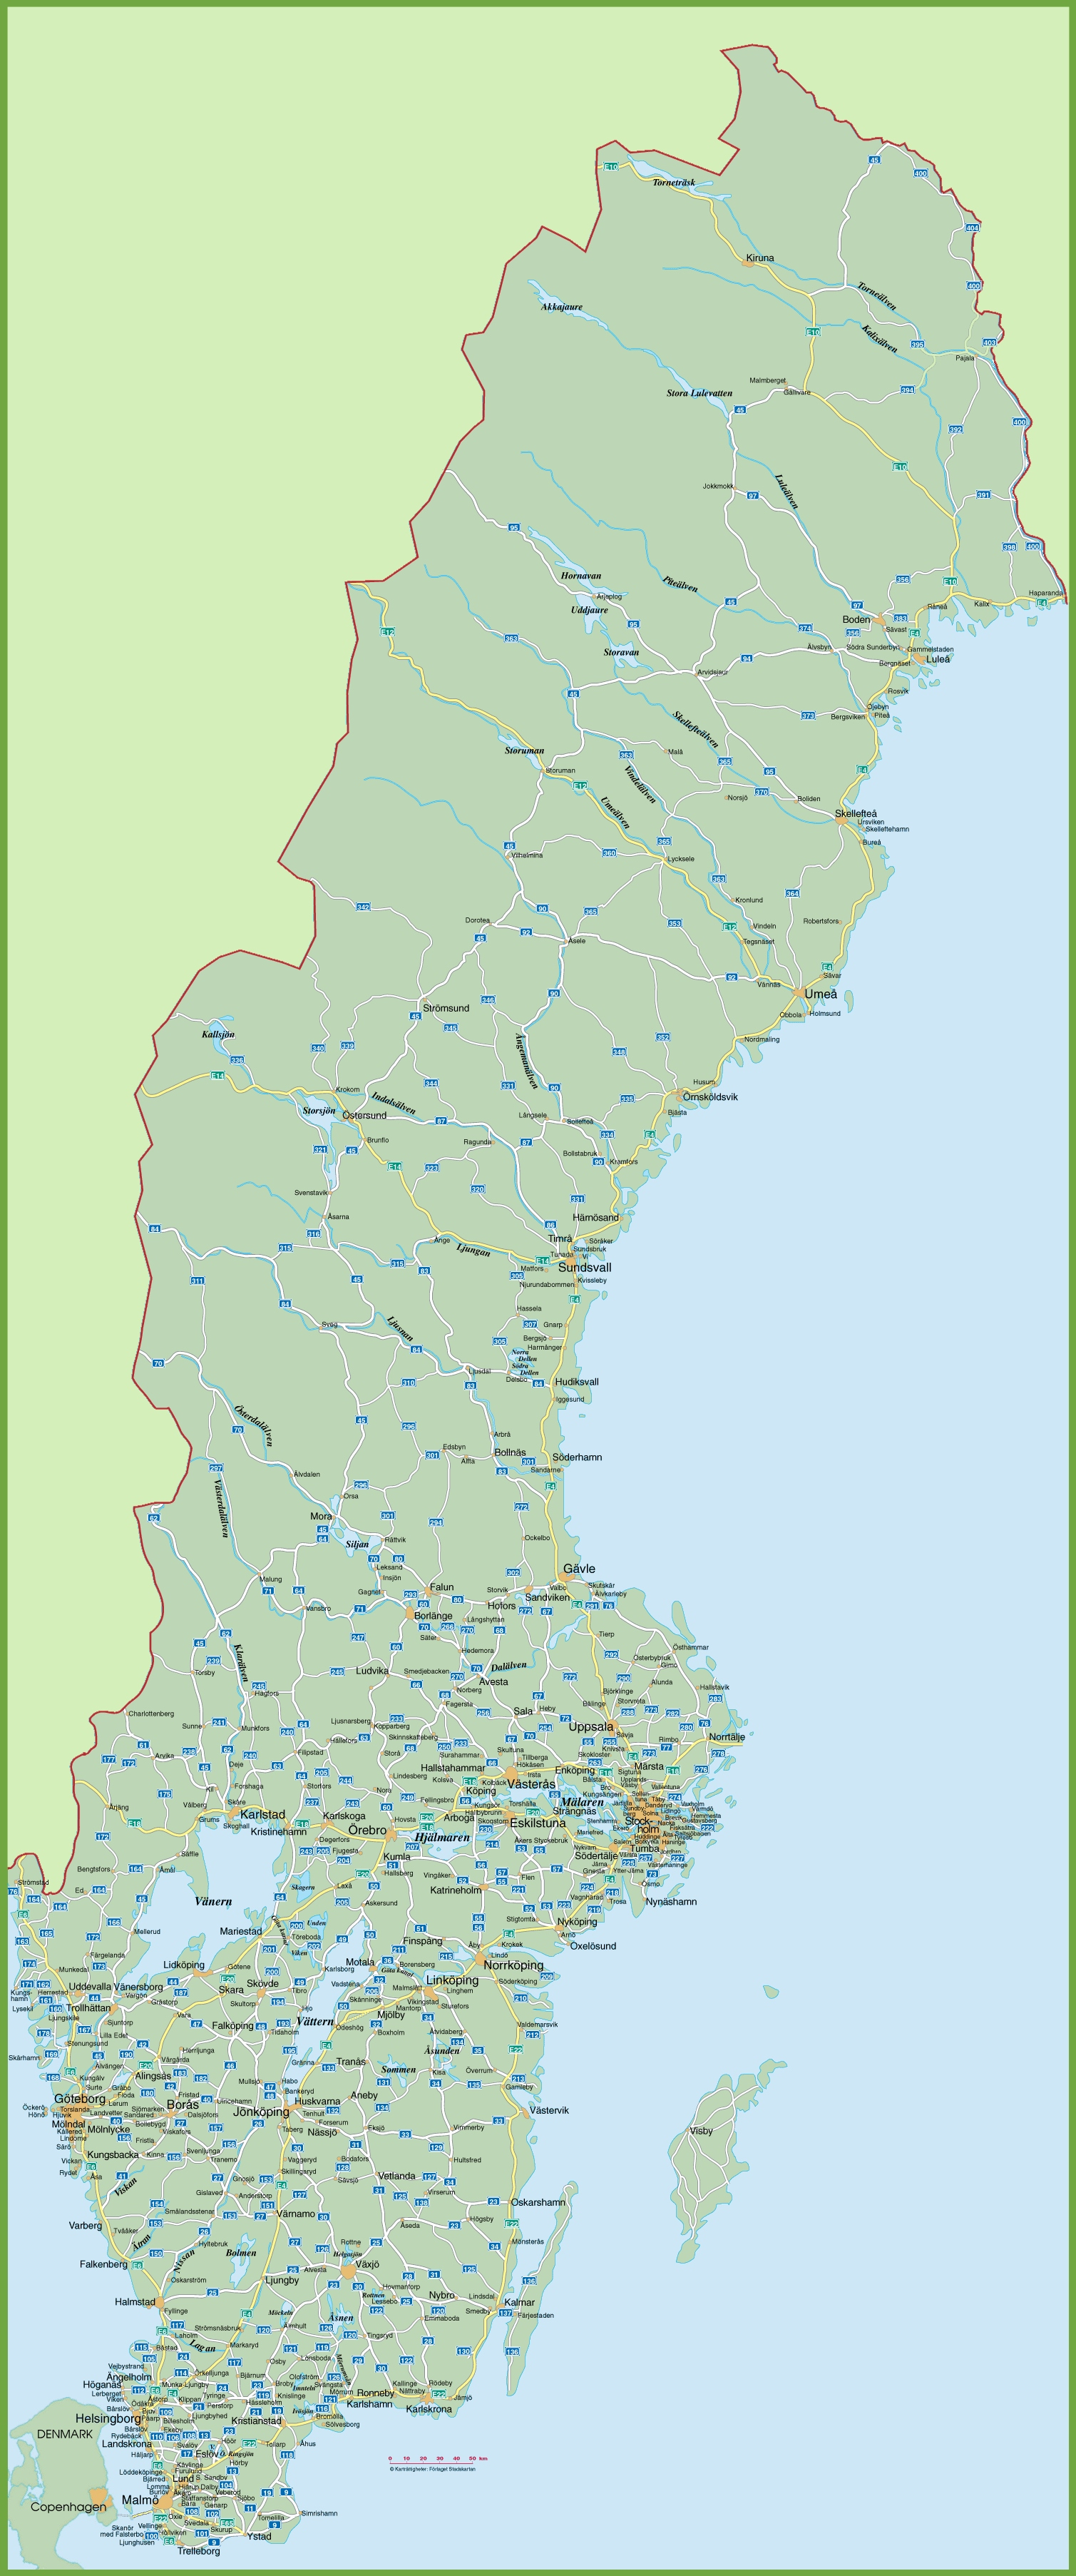 Sweden Road Map - Varberg sweden map